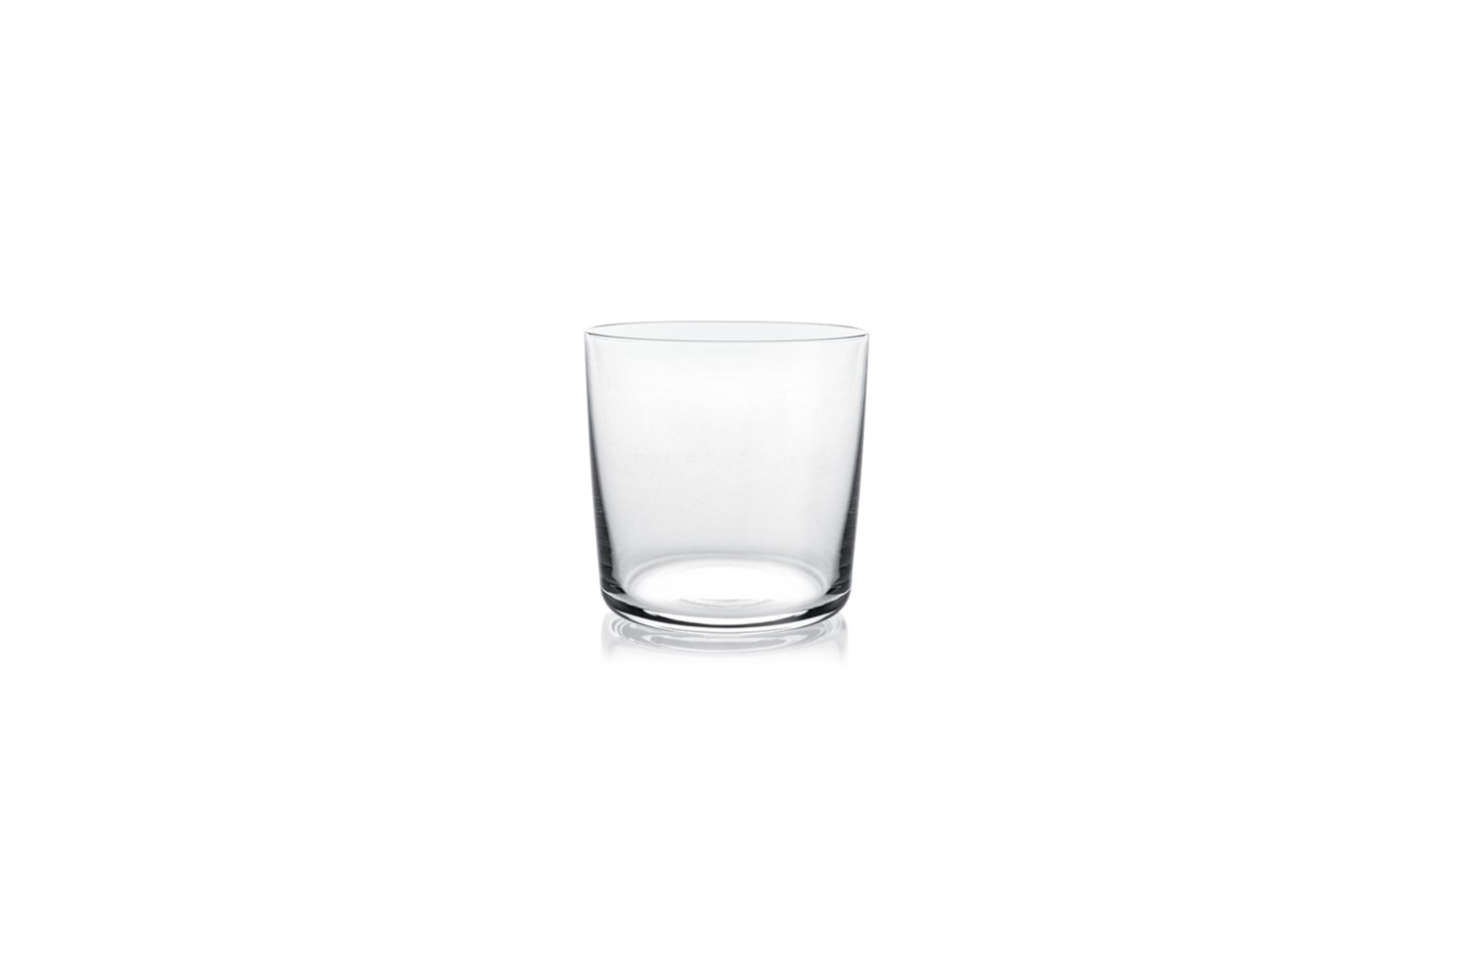 For more casual settings, consider the Alessi Glass Family White Wine Glass by Jasper Morrison; $40 for a set of 4 at Hive.